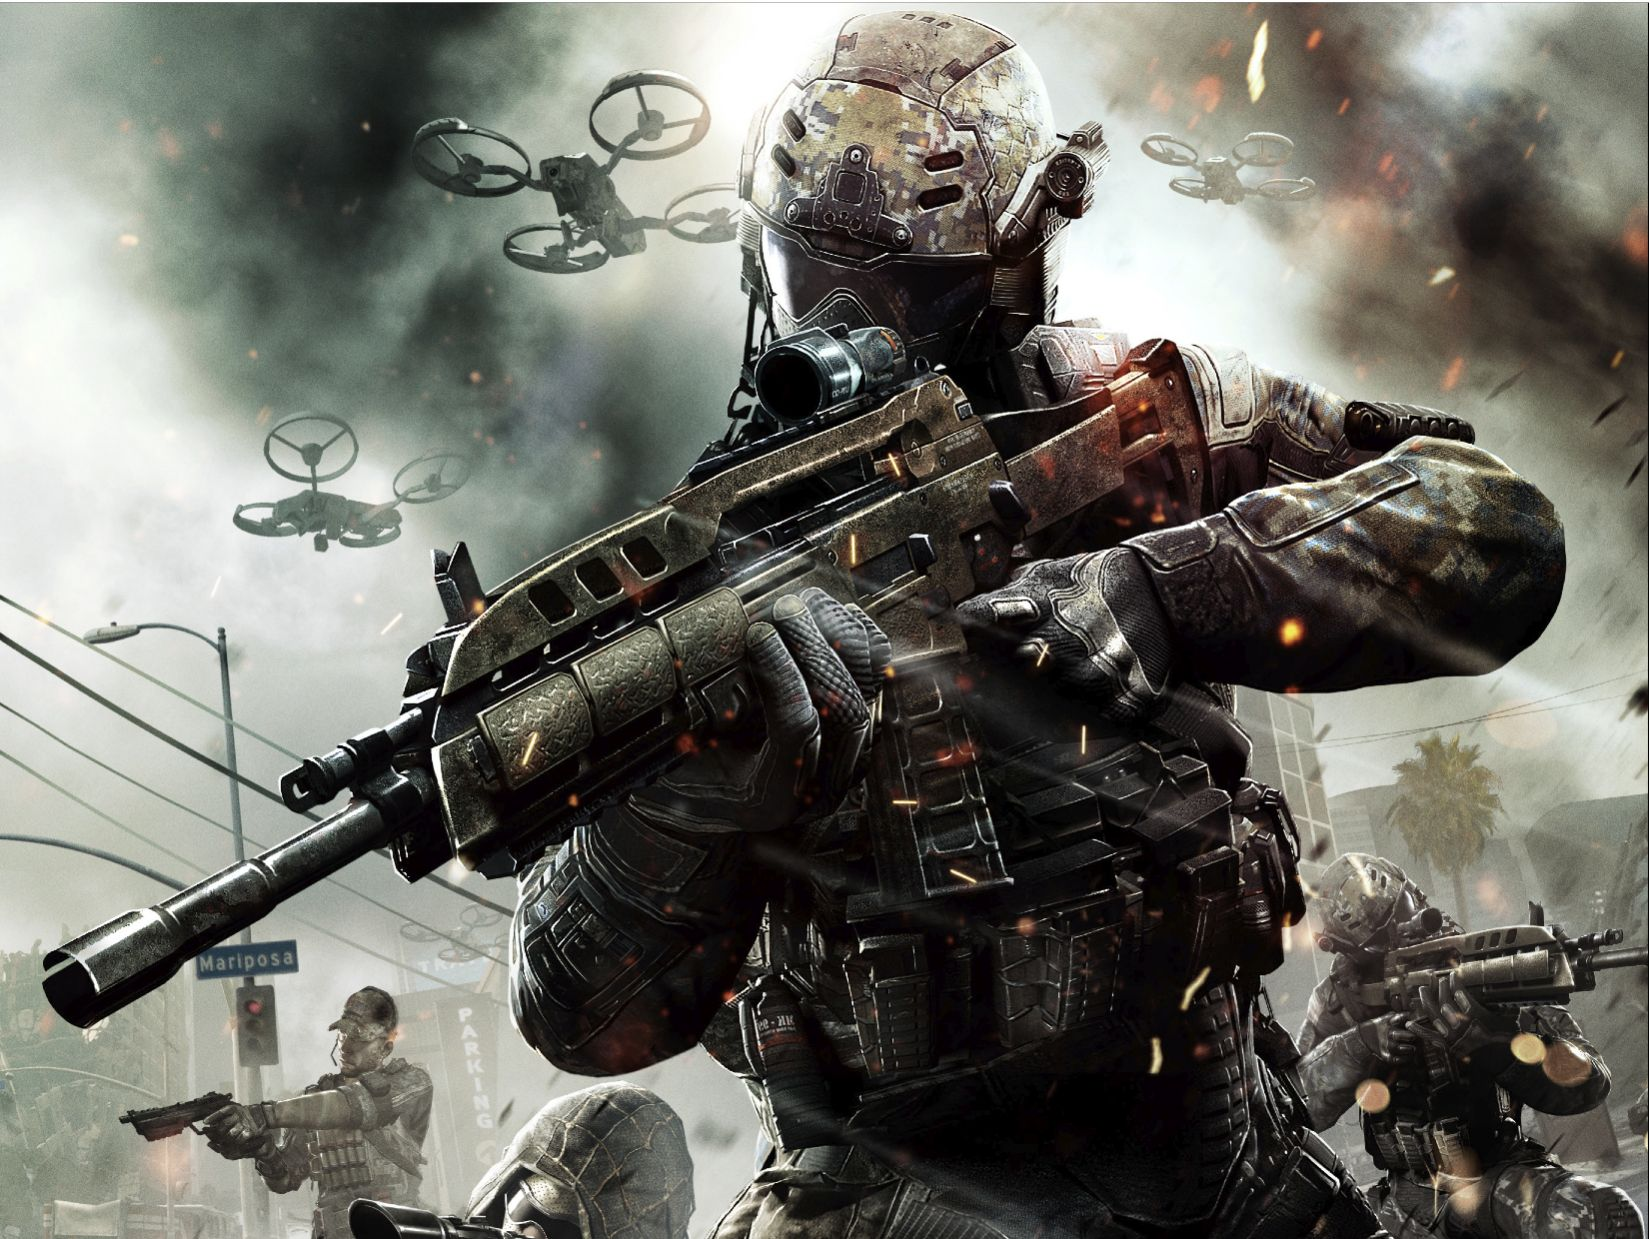 Free Download Black Ops 2 Hd Wallpaper Collection Call Of